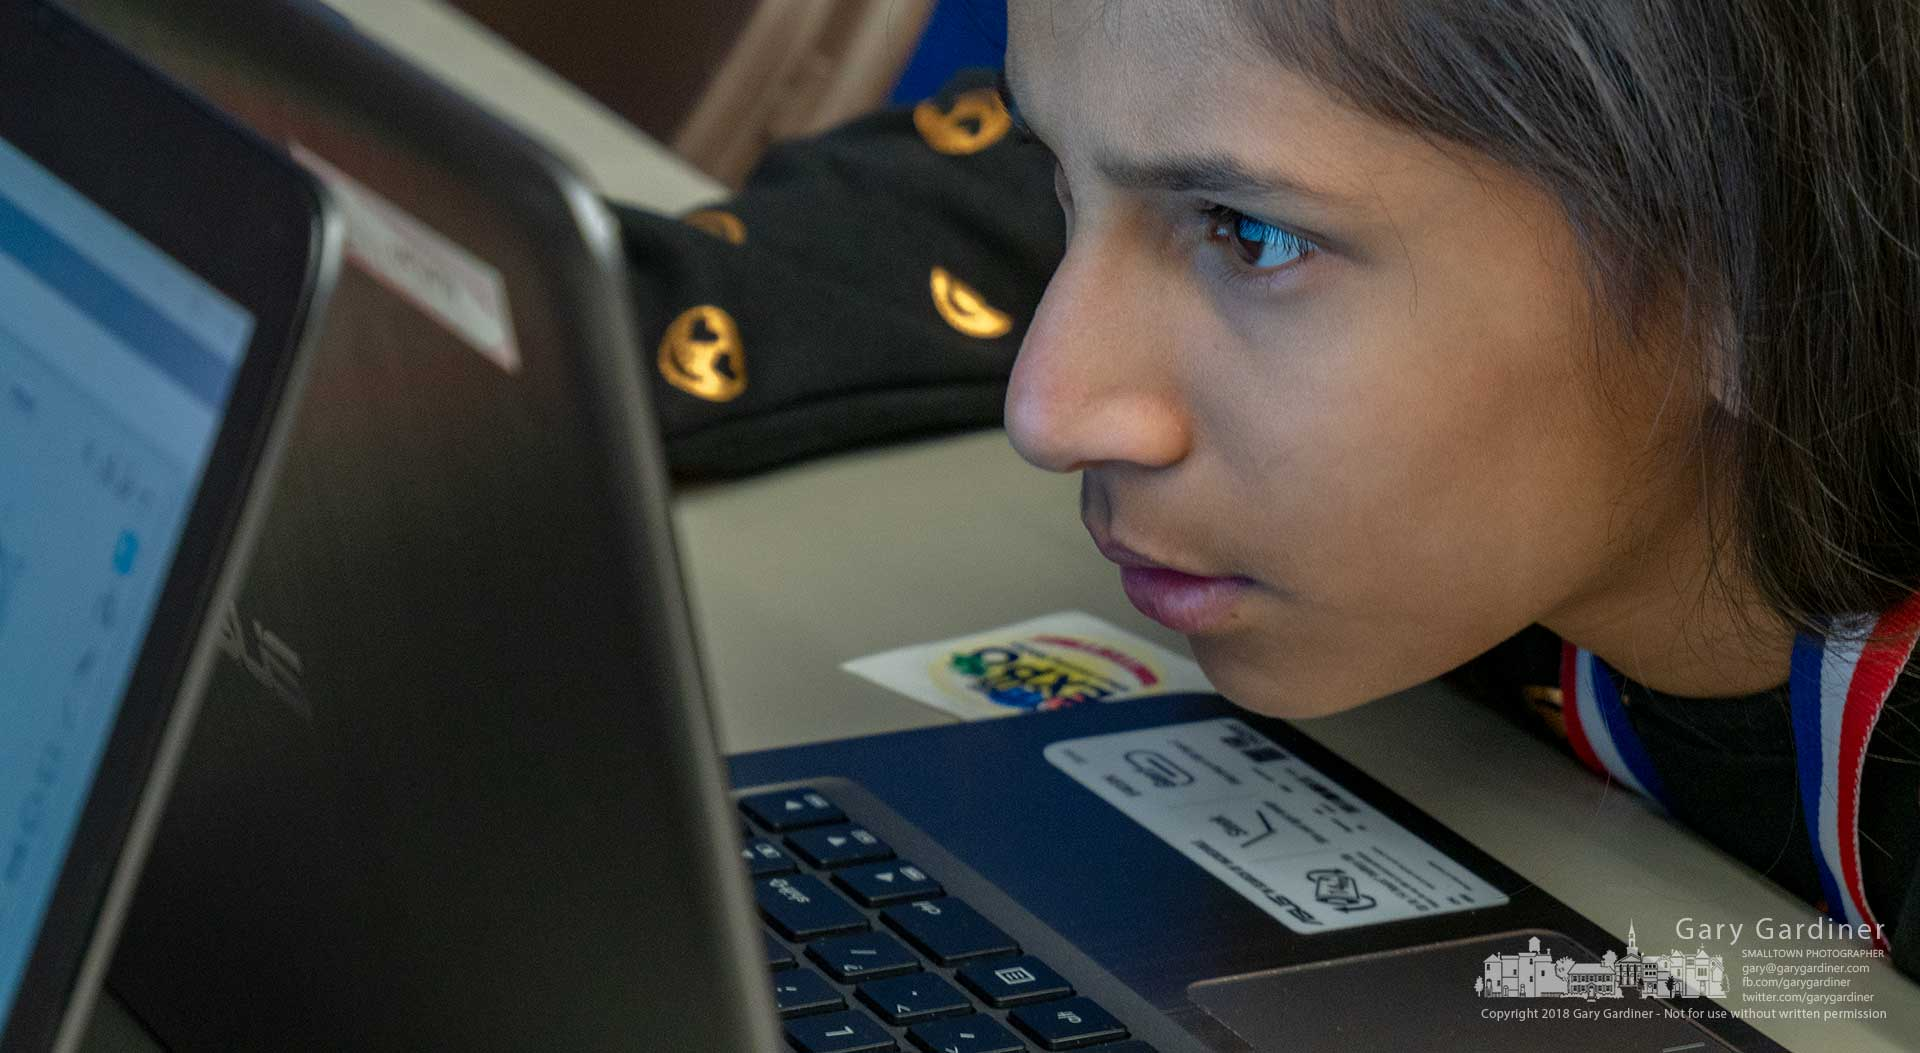 A young girl studies her coding project during a session at The Columbus STEM and Arts Expo at The Point at Otterbein University. My Final Photo for Nov. 17, 2018.